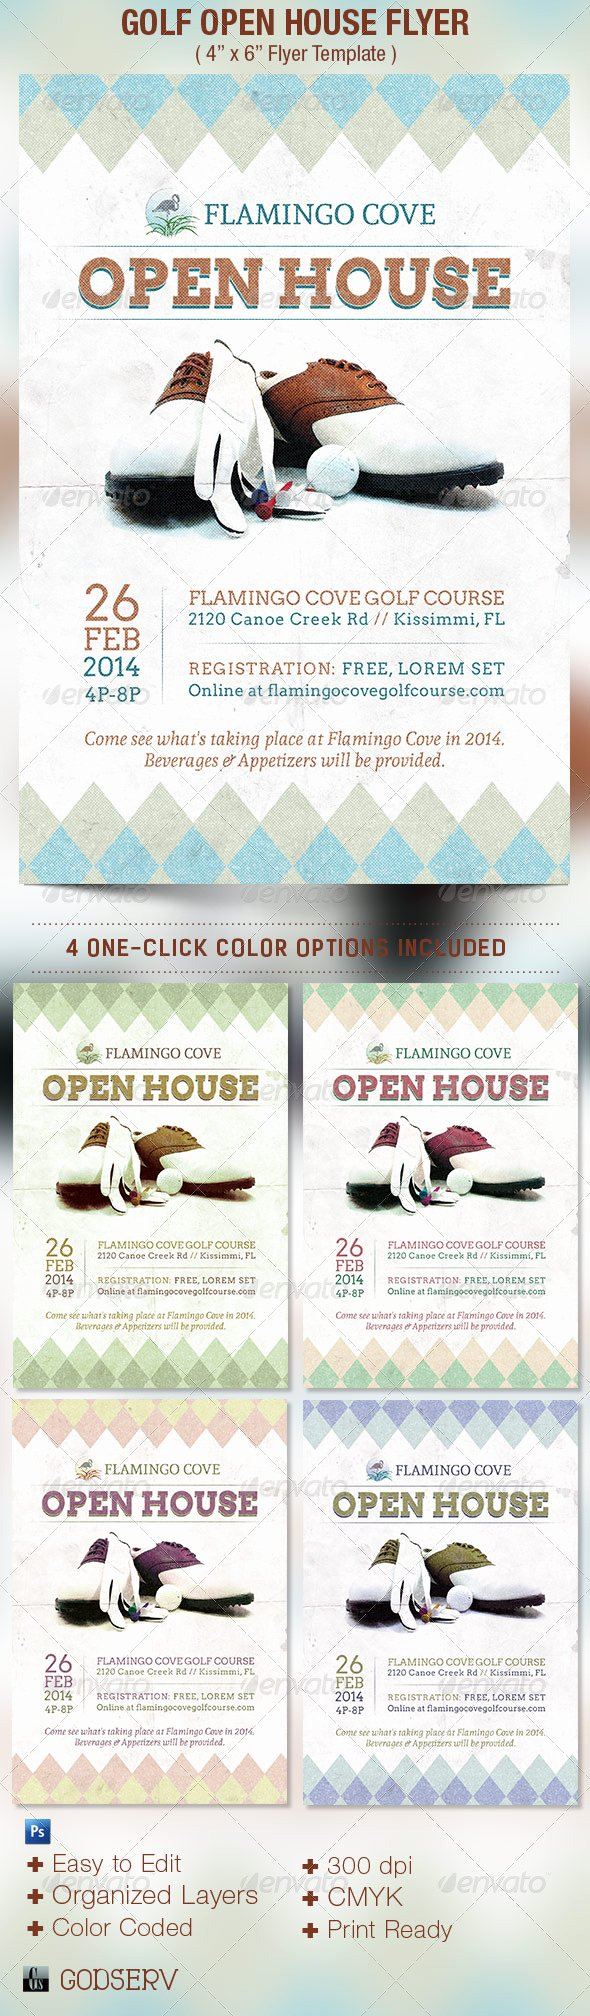 Open House Flyers Template Fresh Golf Open House Flyer Template